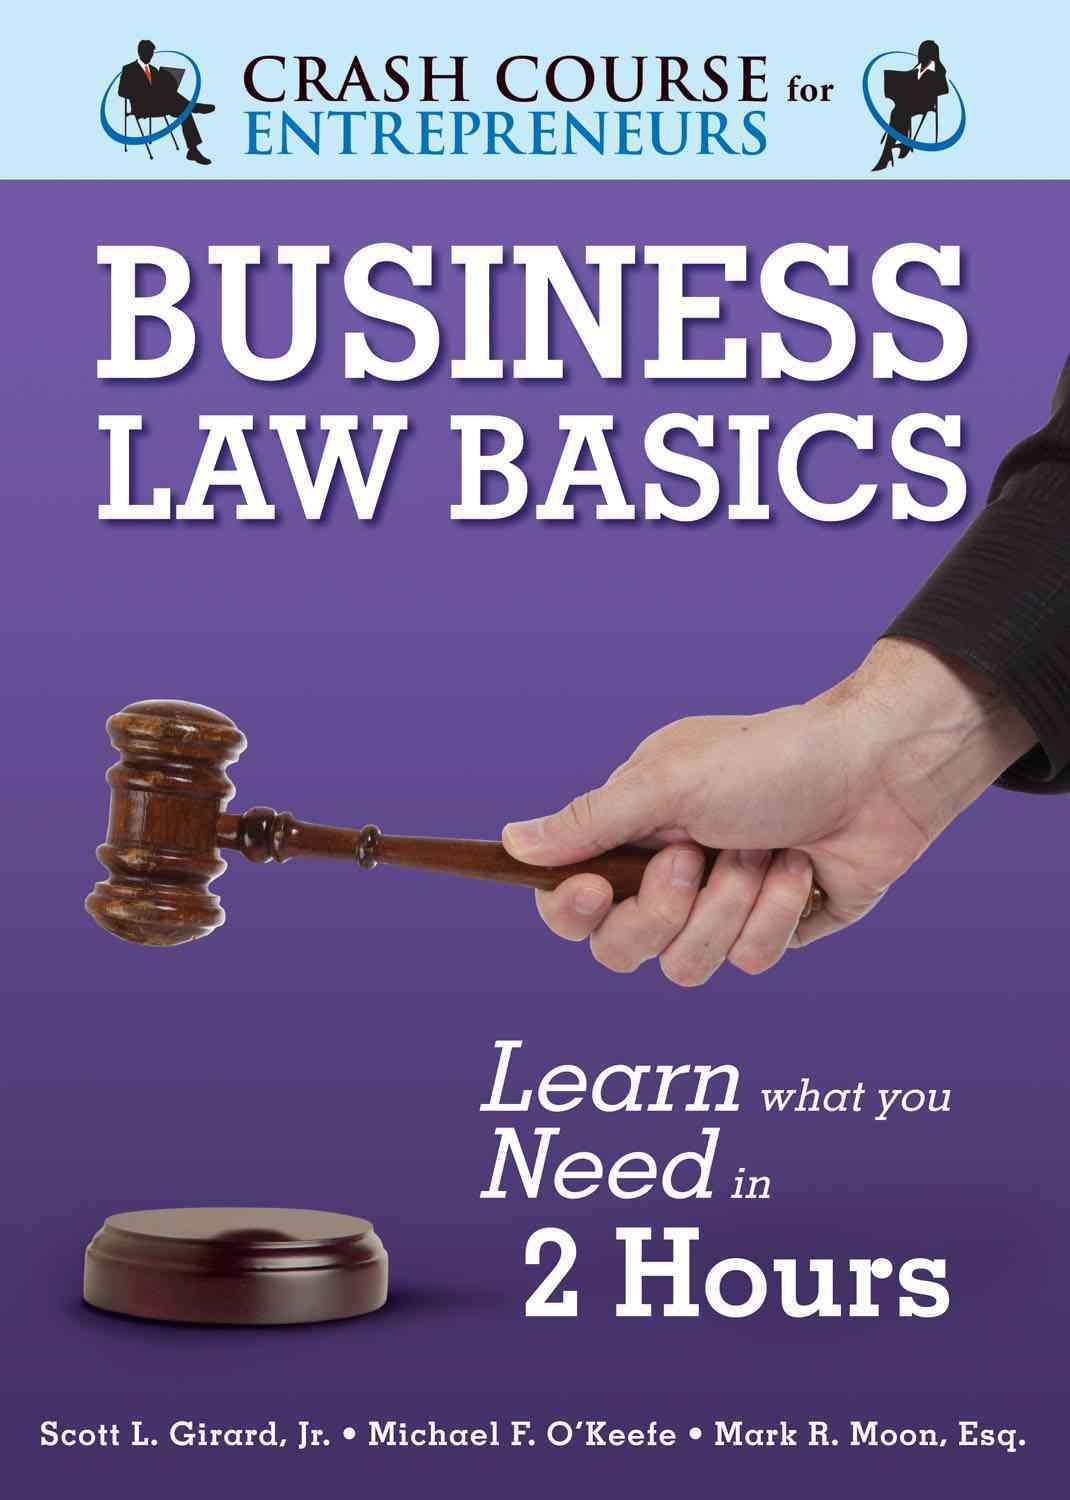 Business Law Basics By O'Keefe, Michael F./ Moon, Mark R./ Girard, Scott L., Jr.